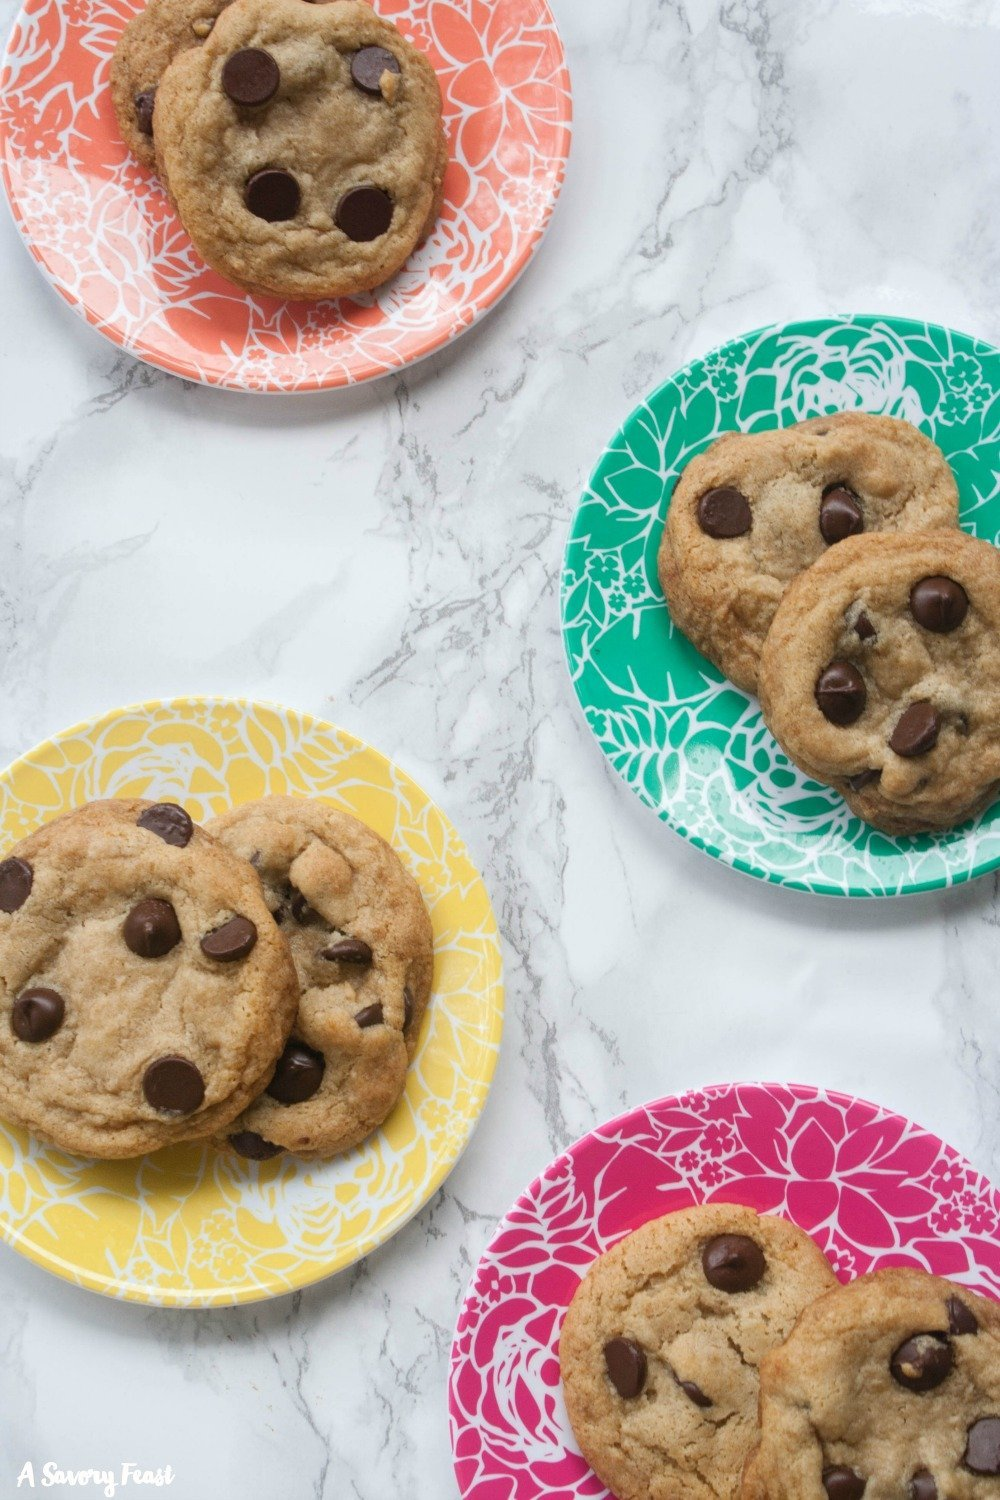 These are the best vegan chocolate chip cookies! Soft, chewy, sweet and delicious. You won't believe that these cookies are dairy free and egg free.